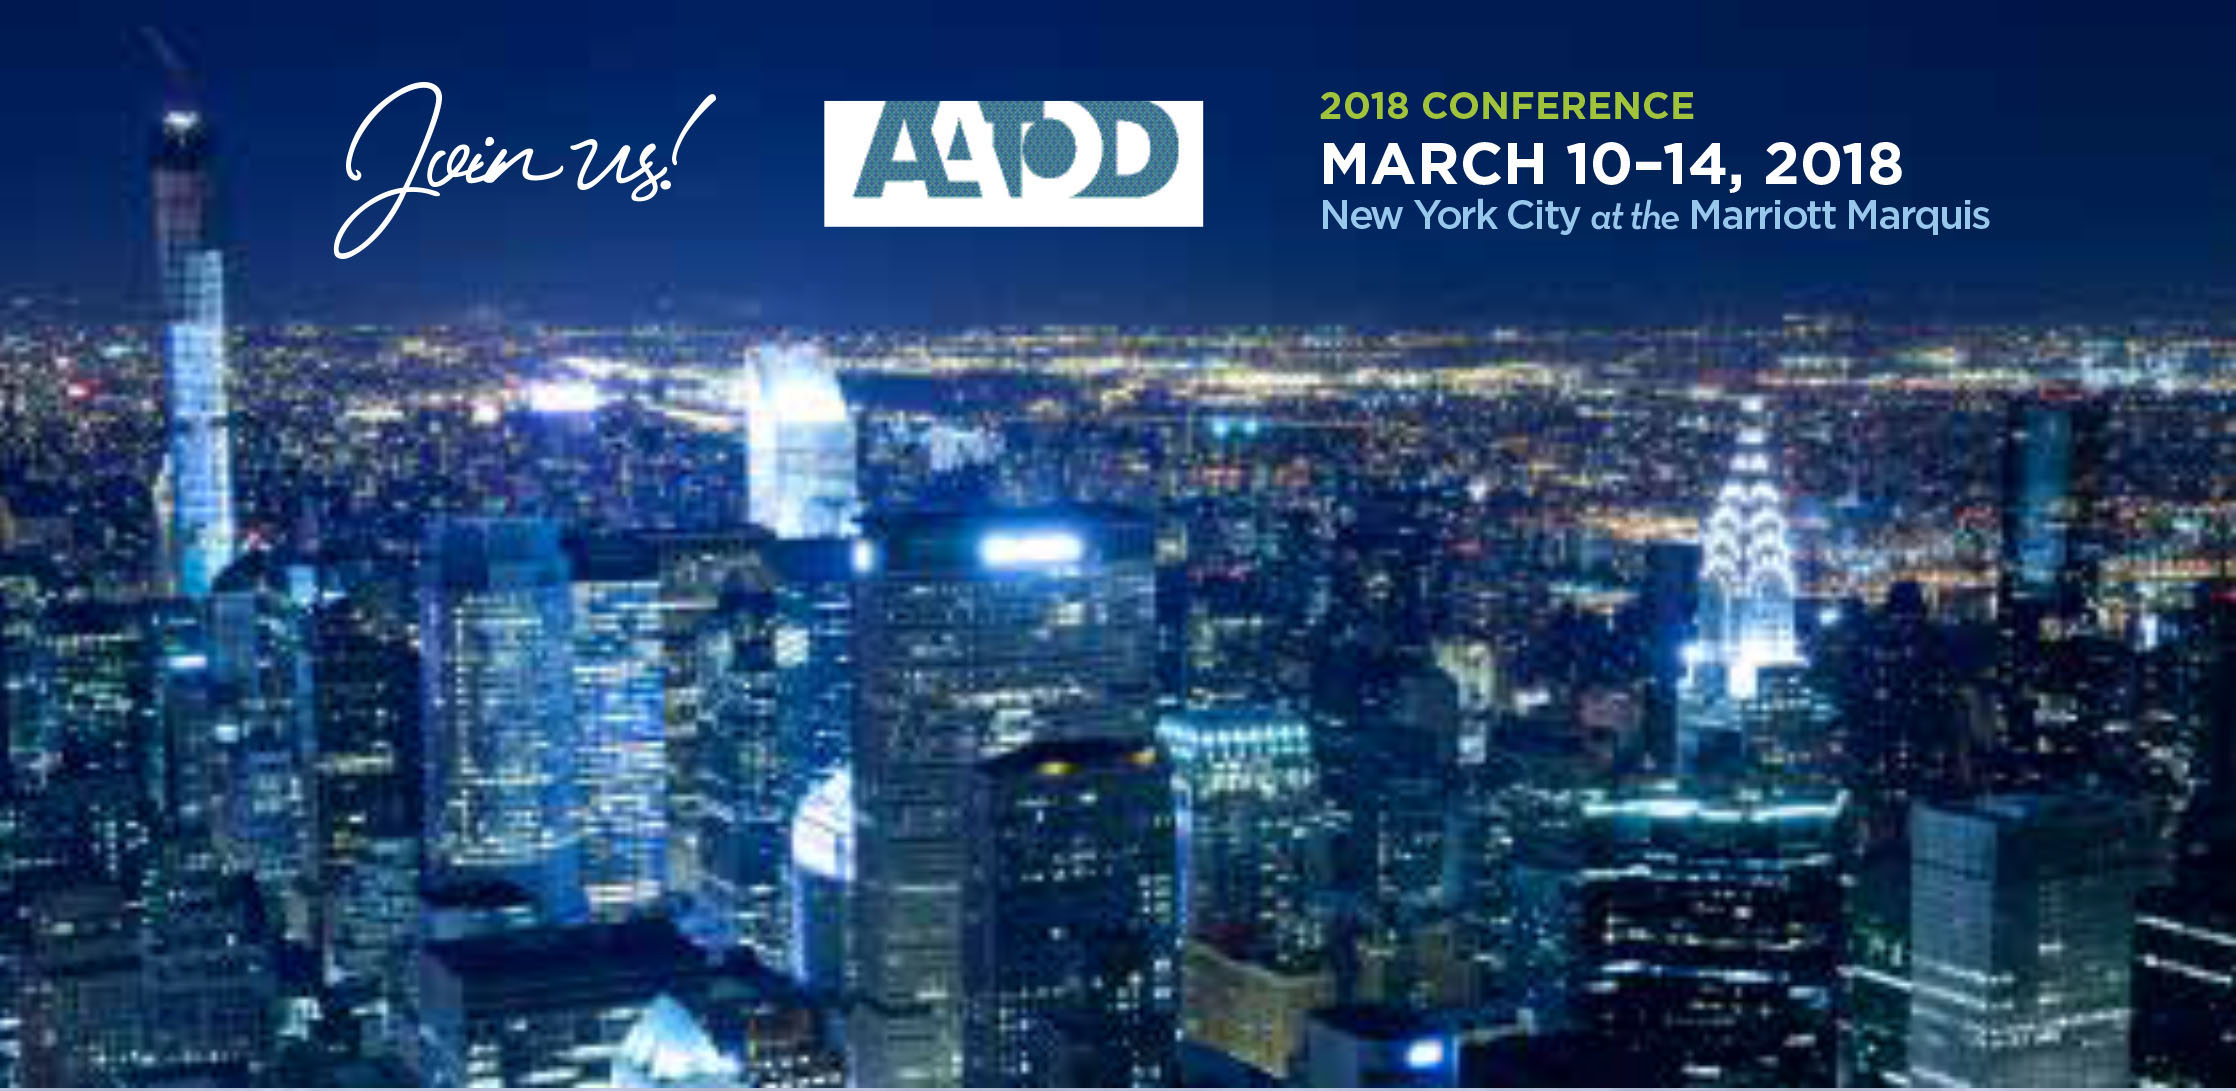 Register Now for the 2018 AATOD Conference!